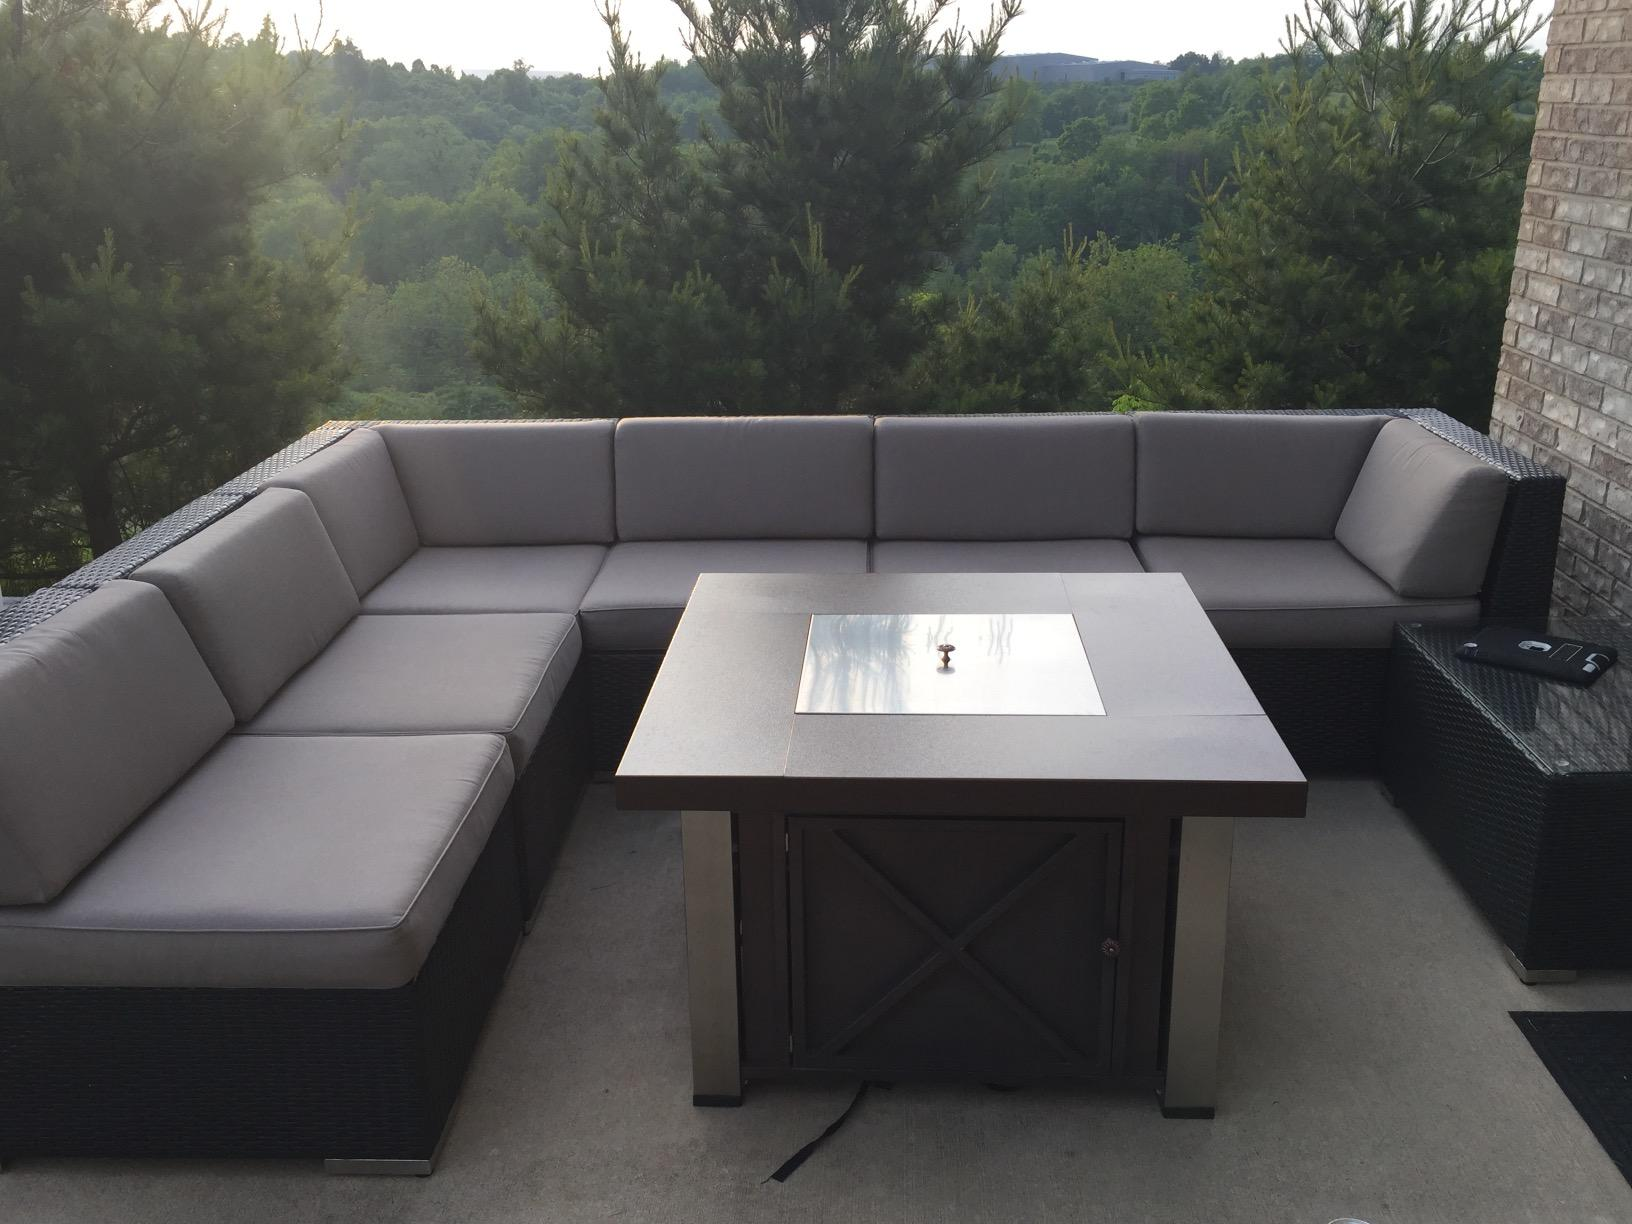 review] ohana collection 7 piece outdoor furniture sofa